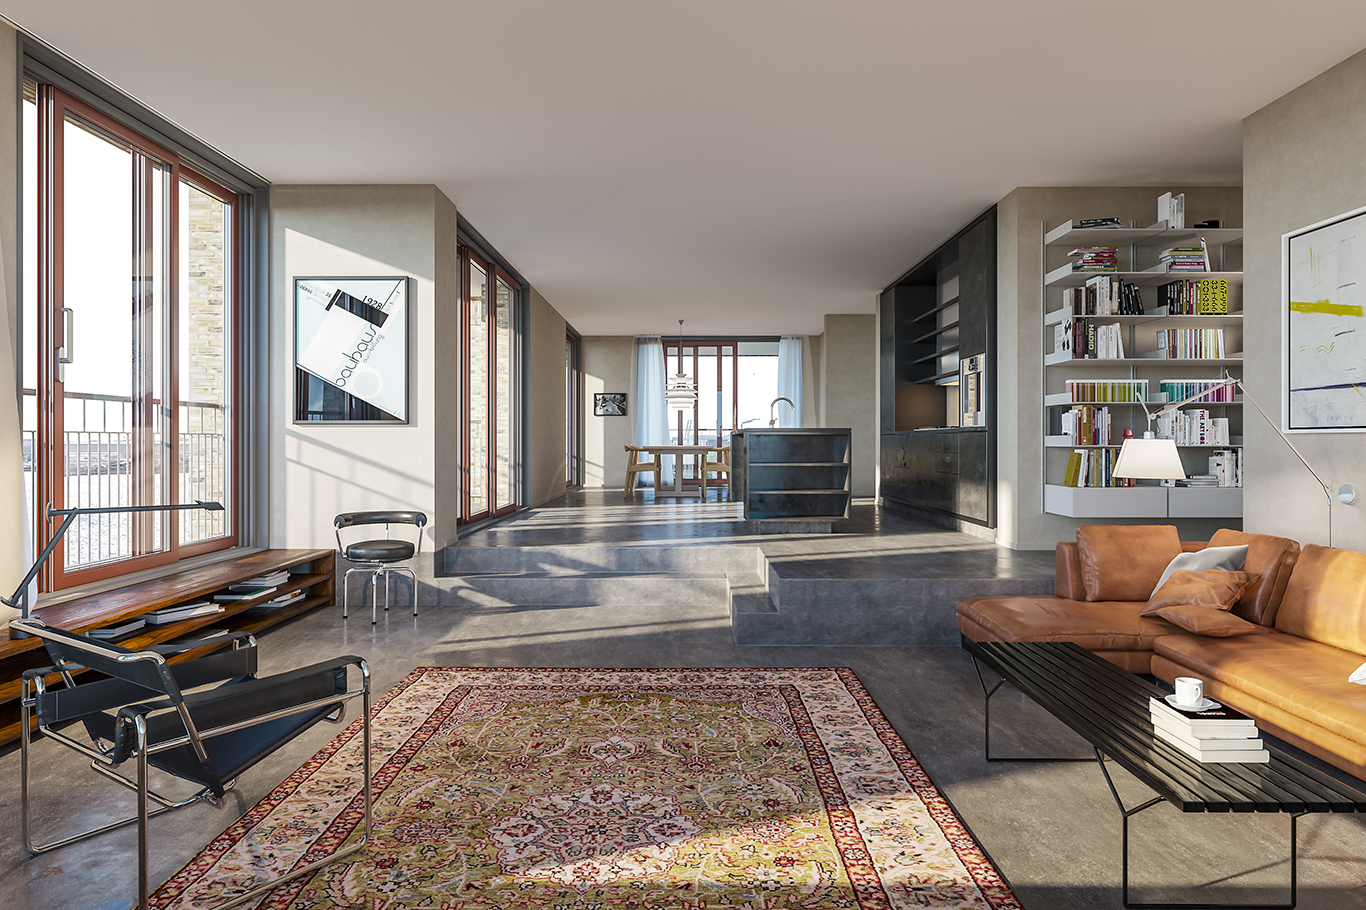 When the residences in Tuborg Strandeng are finished in January 2022, several of the exclusive apartments will be equipped with the Form 45 kitchen in black oxidised steel.